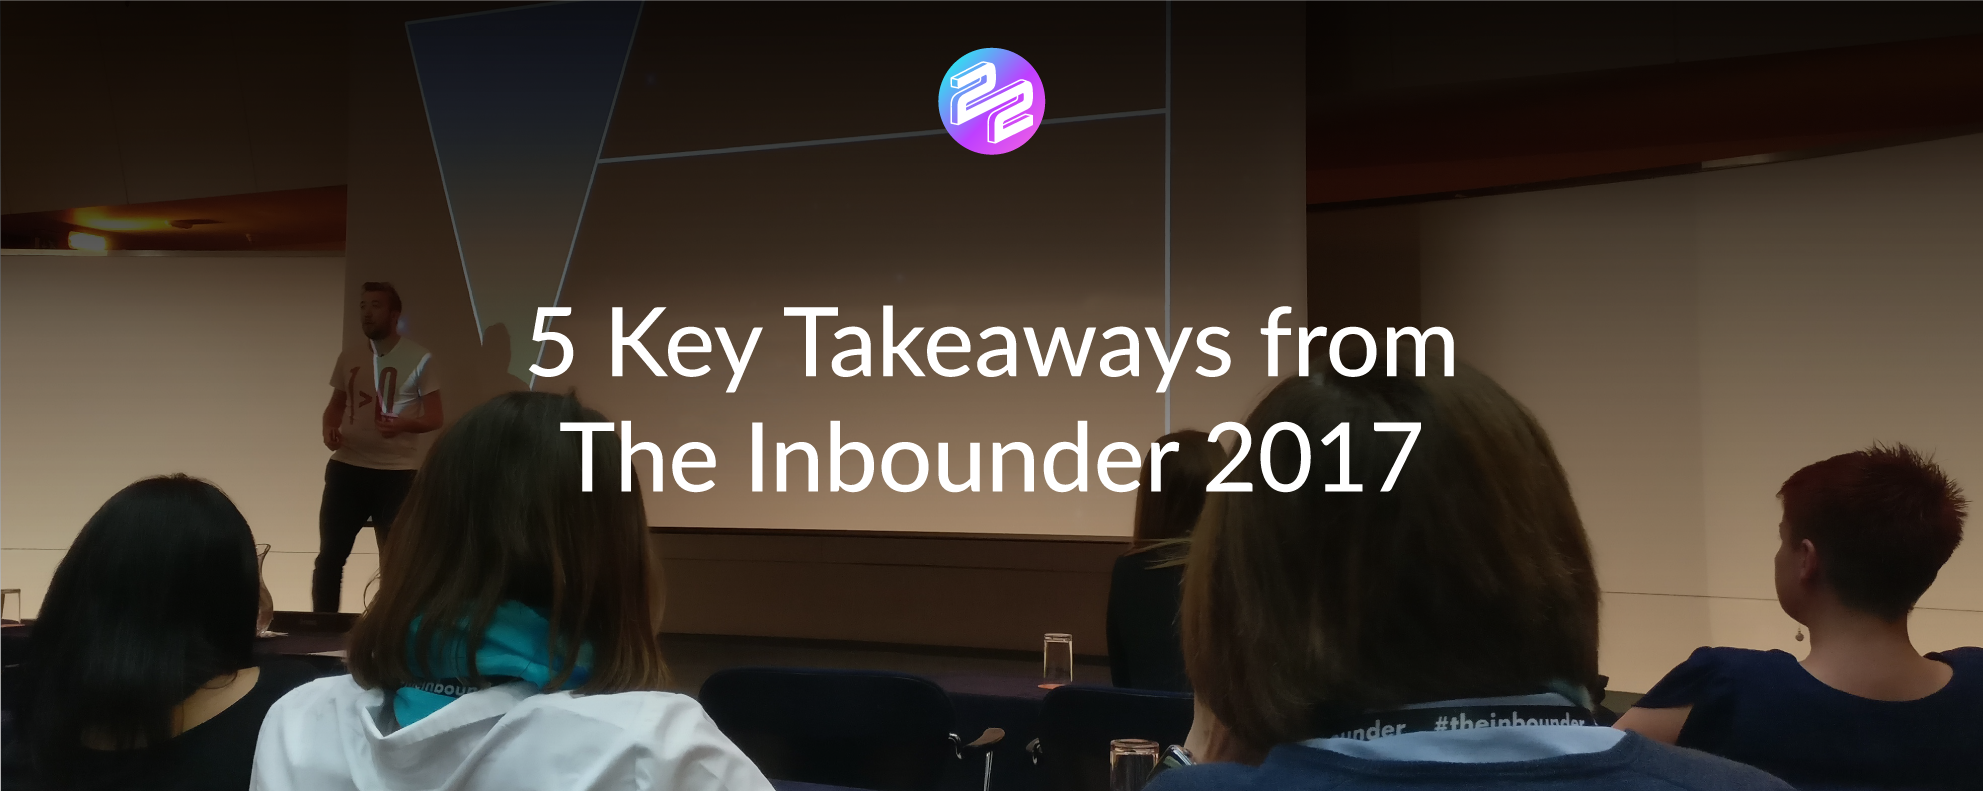 takeaways-from-the-inbounder.png